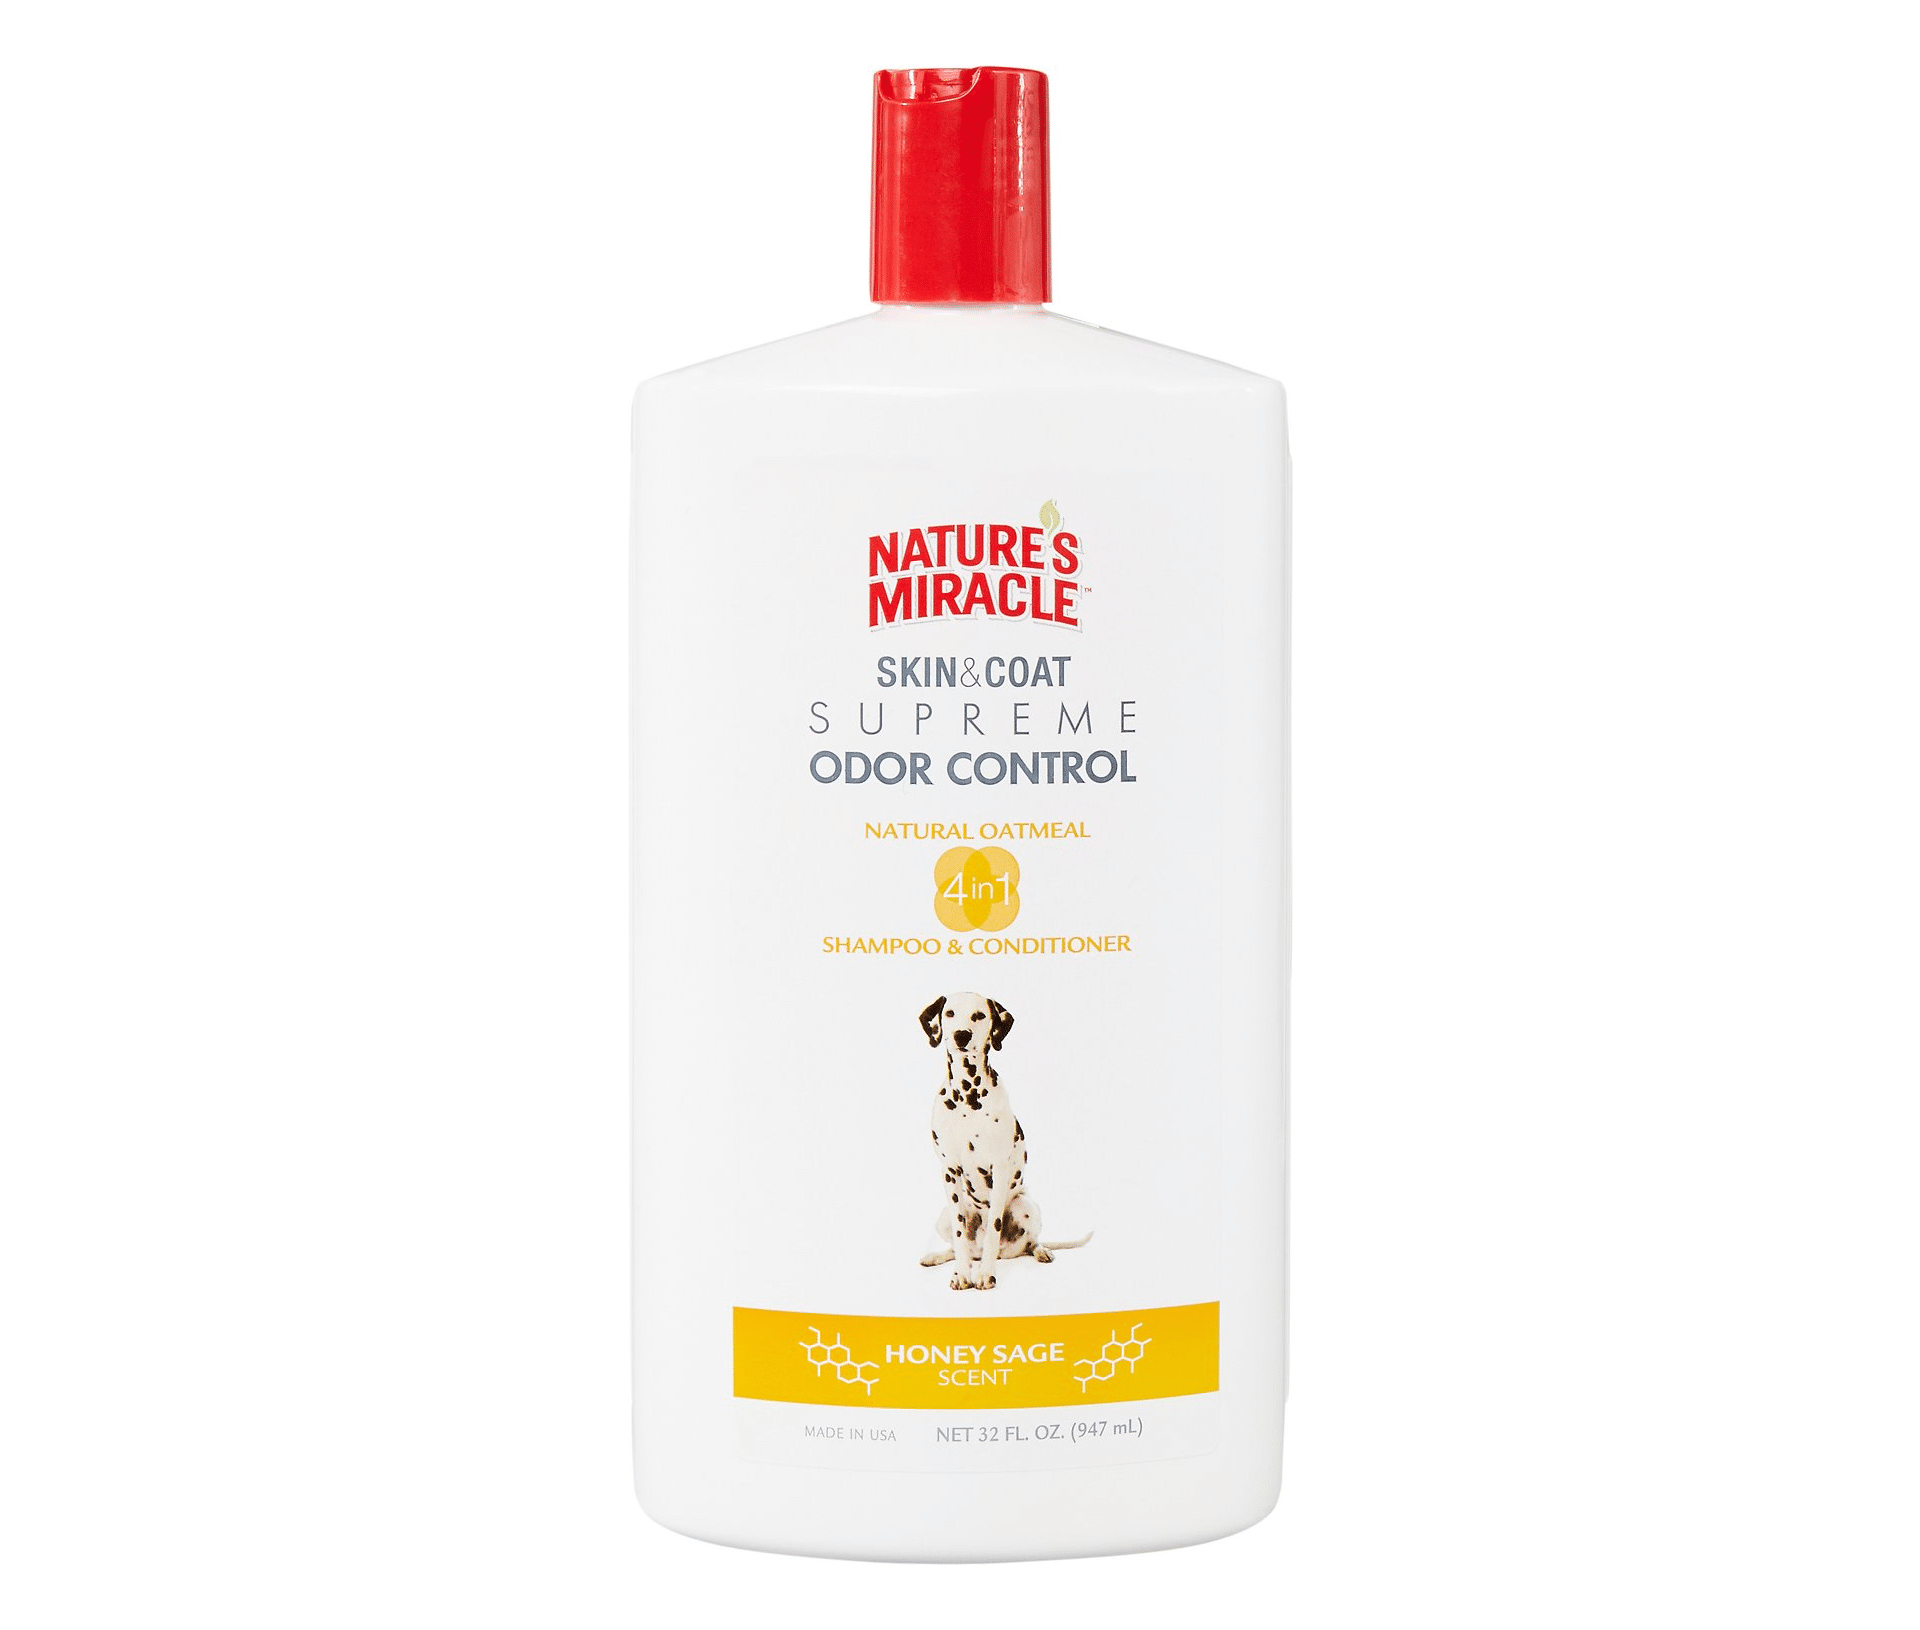 Nature's Miracle Supreme Odor Control Oatmeal Dog Shampoo and Conditioner